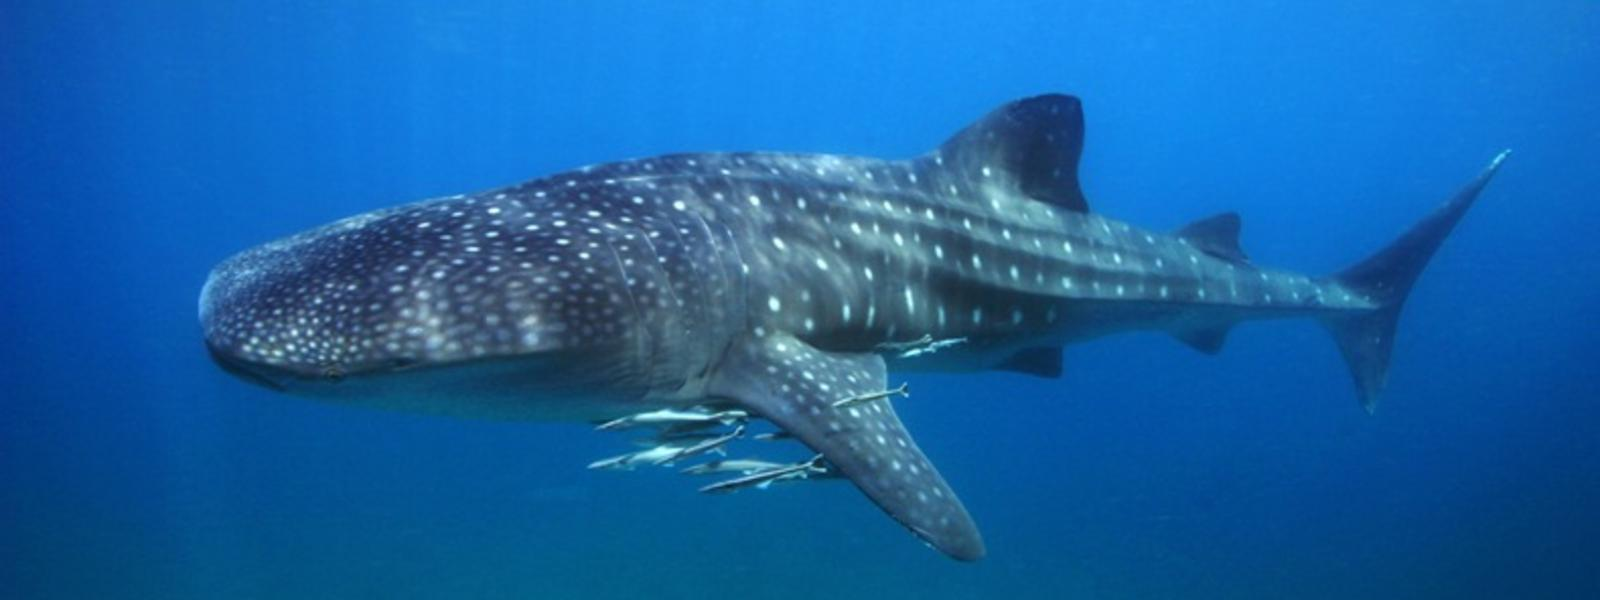 close encounters swimming whale sharks in the close encounters swimming whale sharks in the blog posts wwf